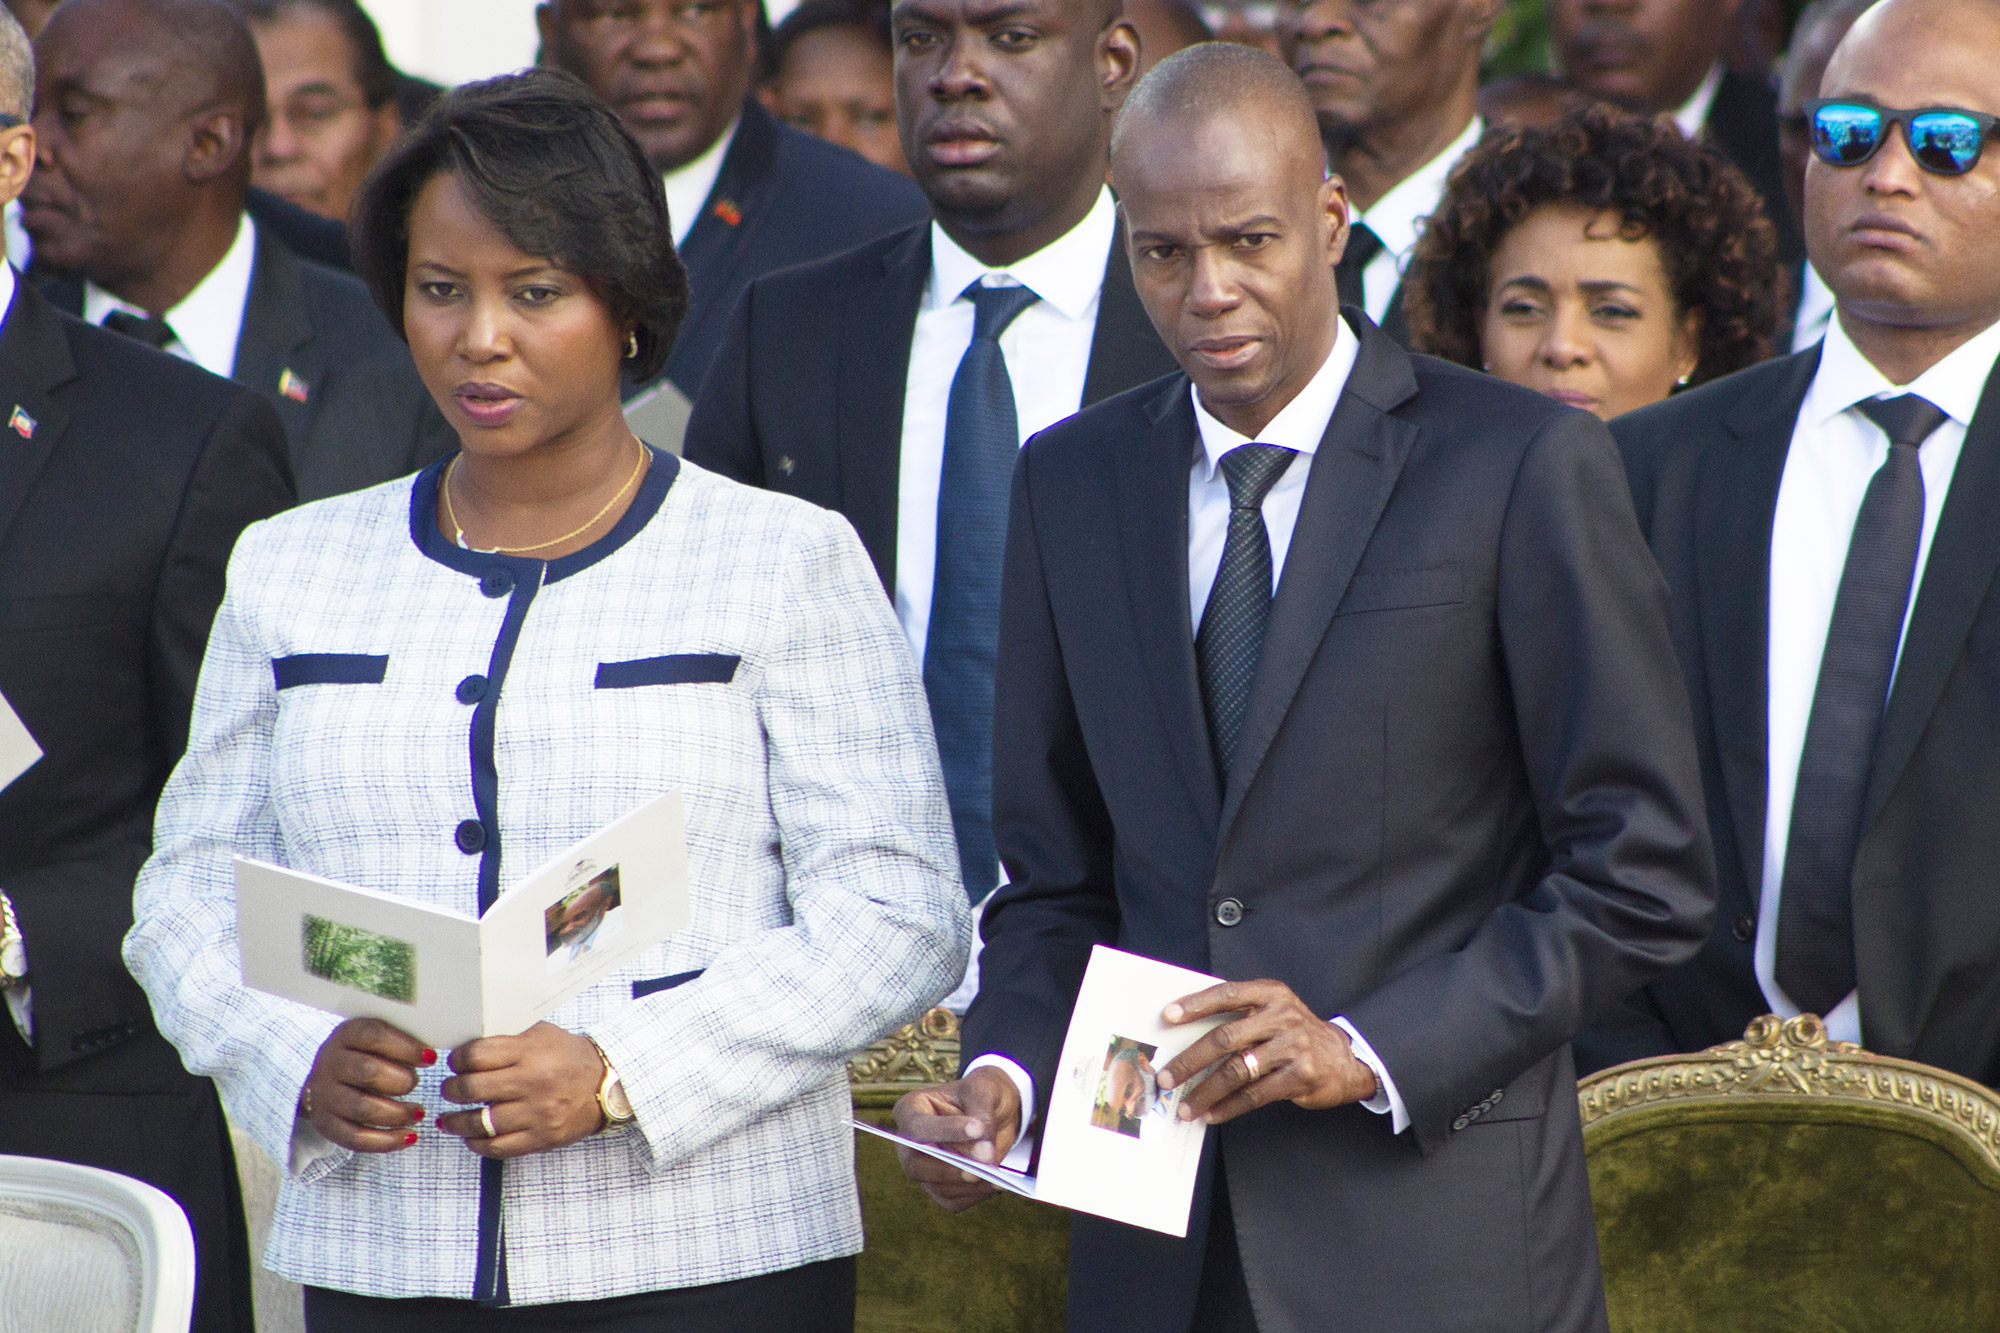 President of Haiti Jovenel Moise and his wife